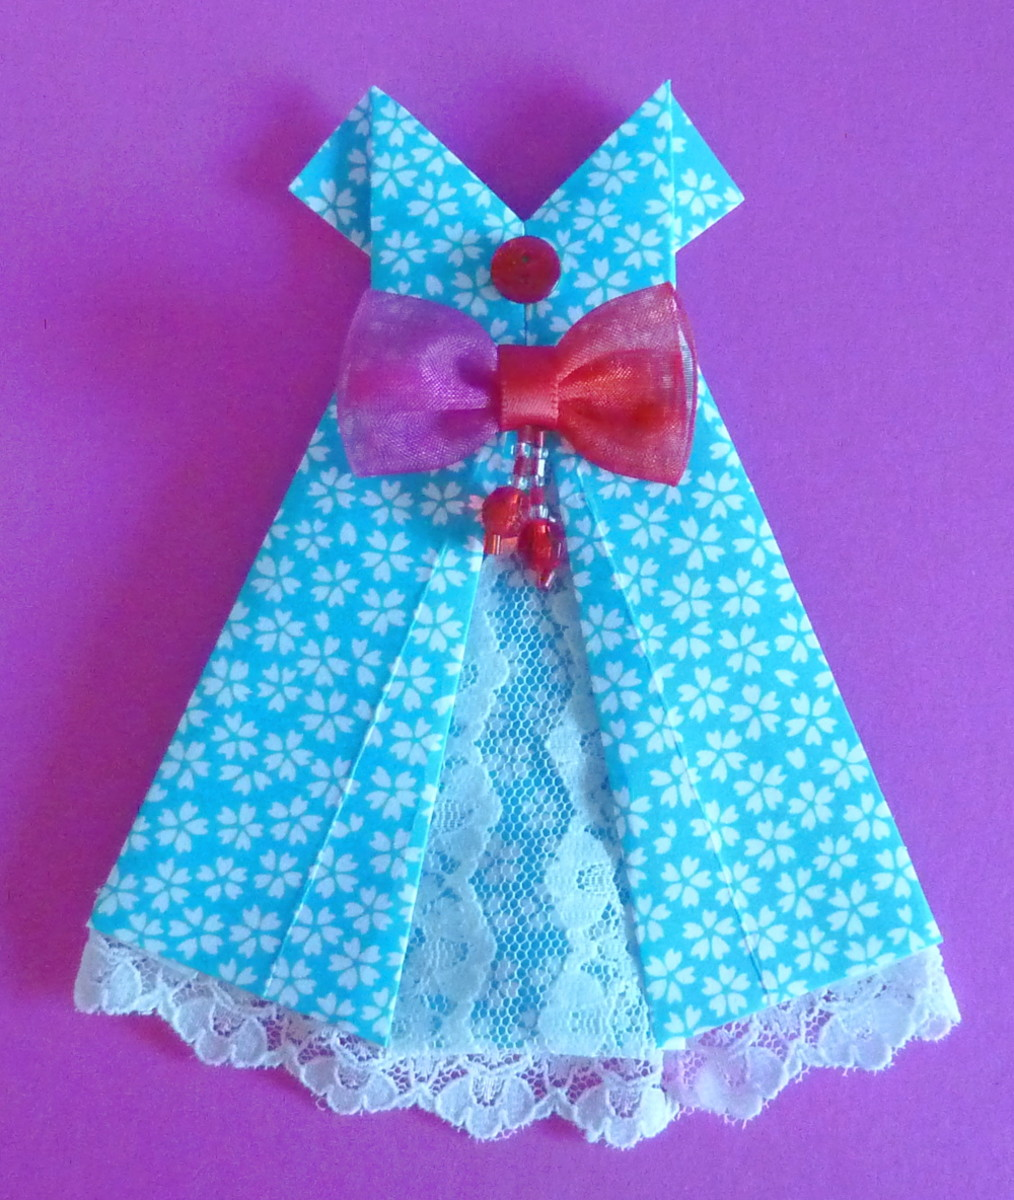 Resource Page for Crafting Pretty Origami Dresses fold a paper dress using easy origami techniques